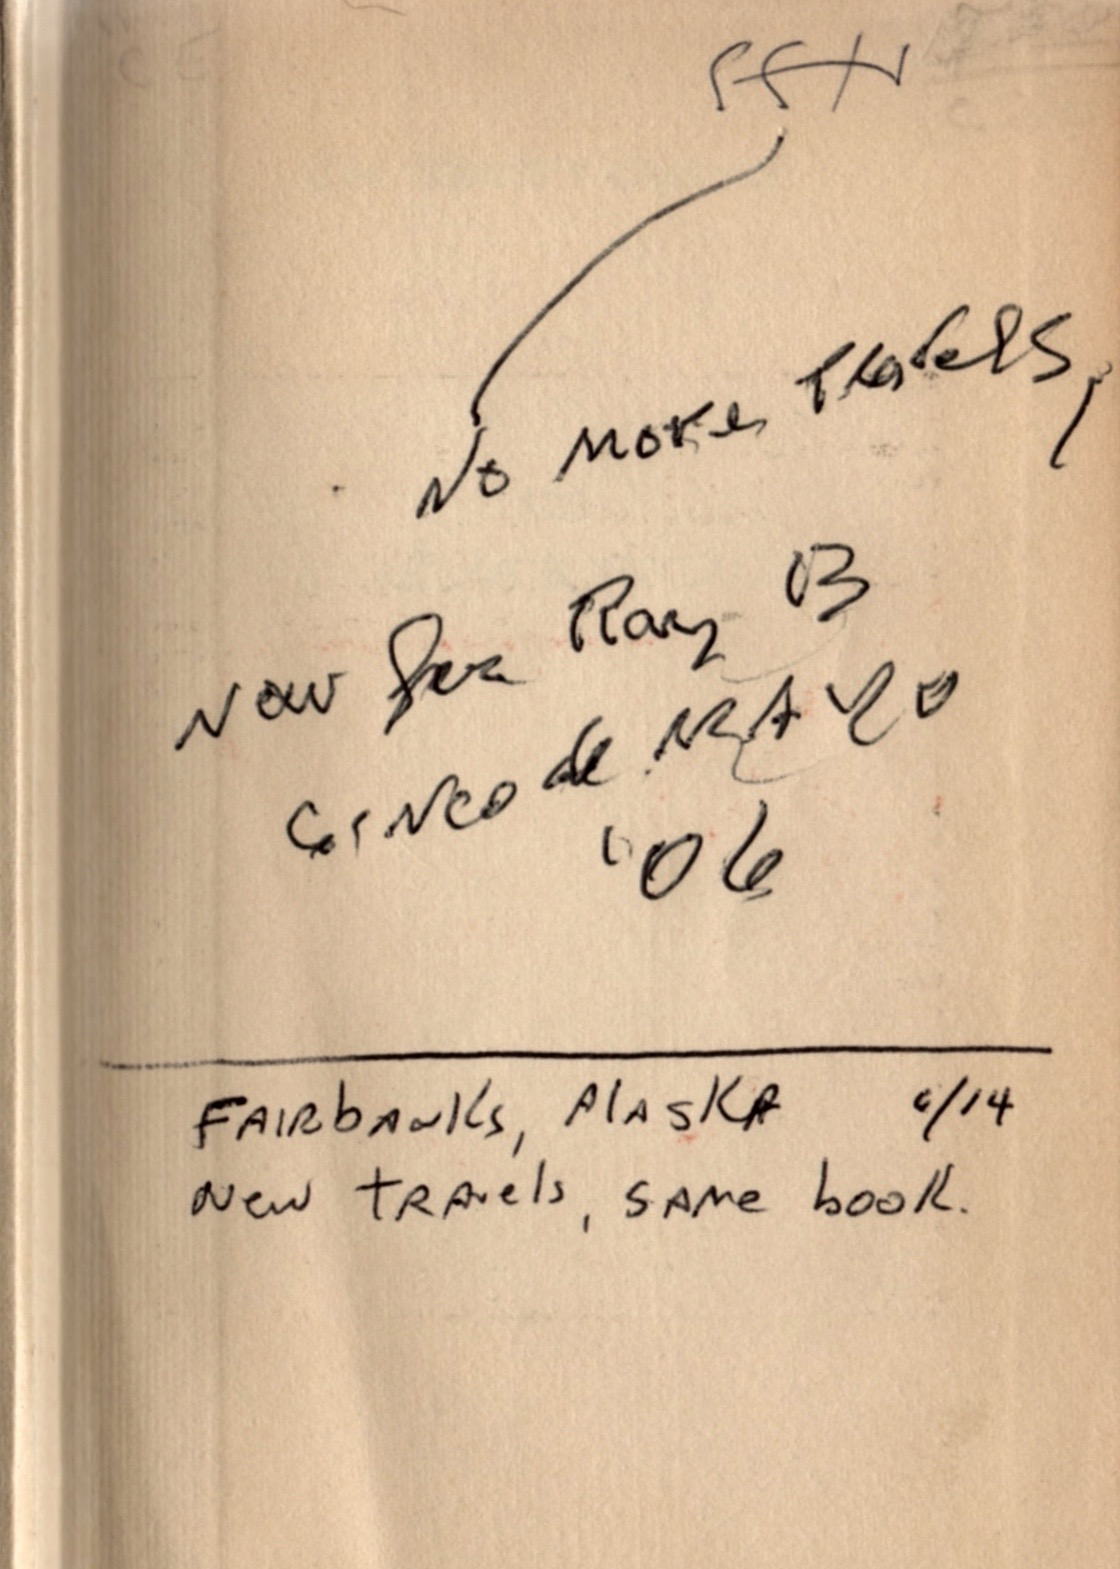 The inscription from the FEP of Chuck's  Sherlock Holmes Selected Stories .